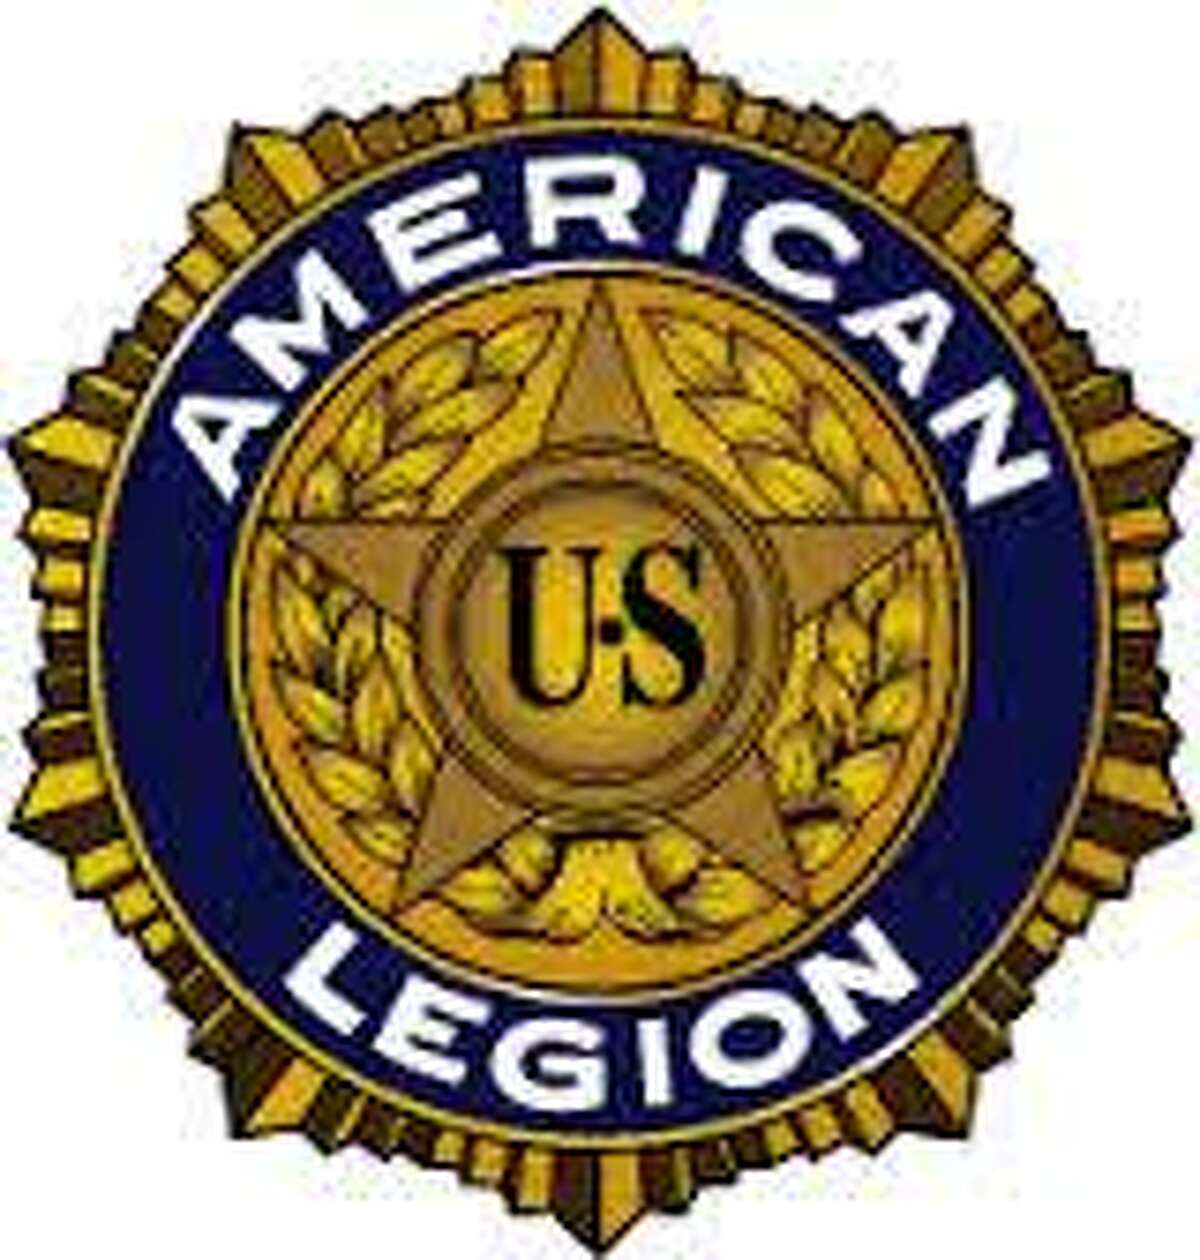 The American Legion 3rd District of Connecticut's Kids Walk will be held April 24 at Great Hollow Lake, 454 Purdy Hill Road, Monroe.